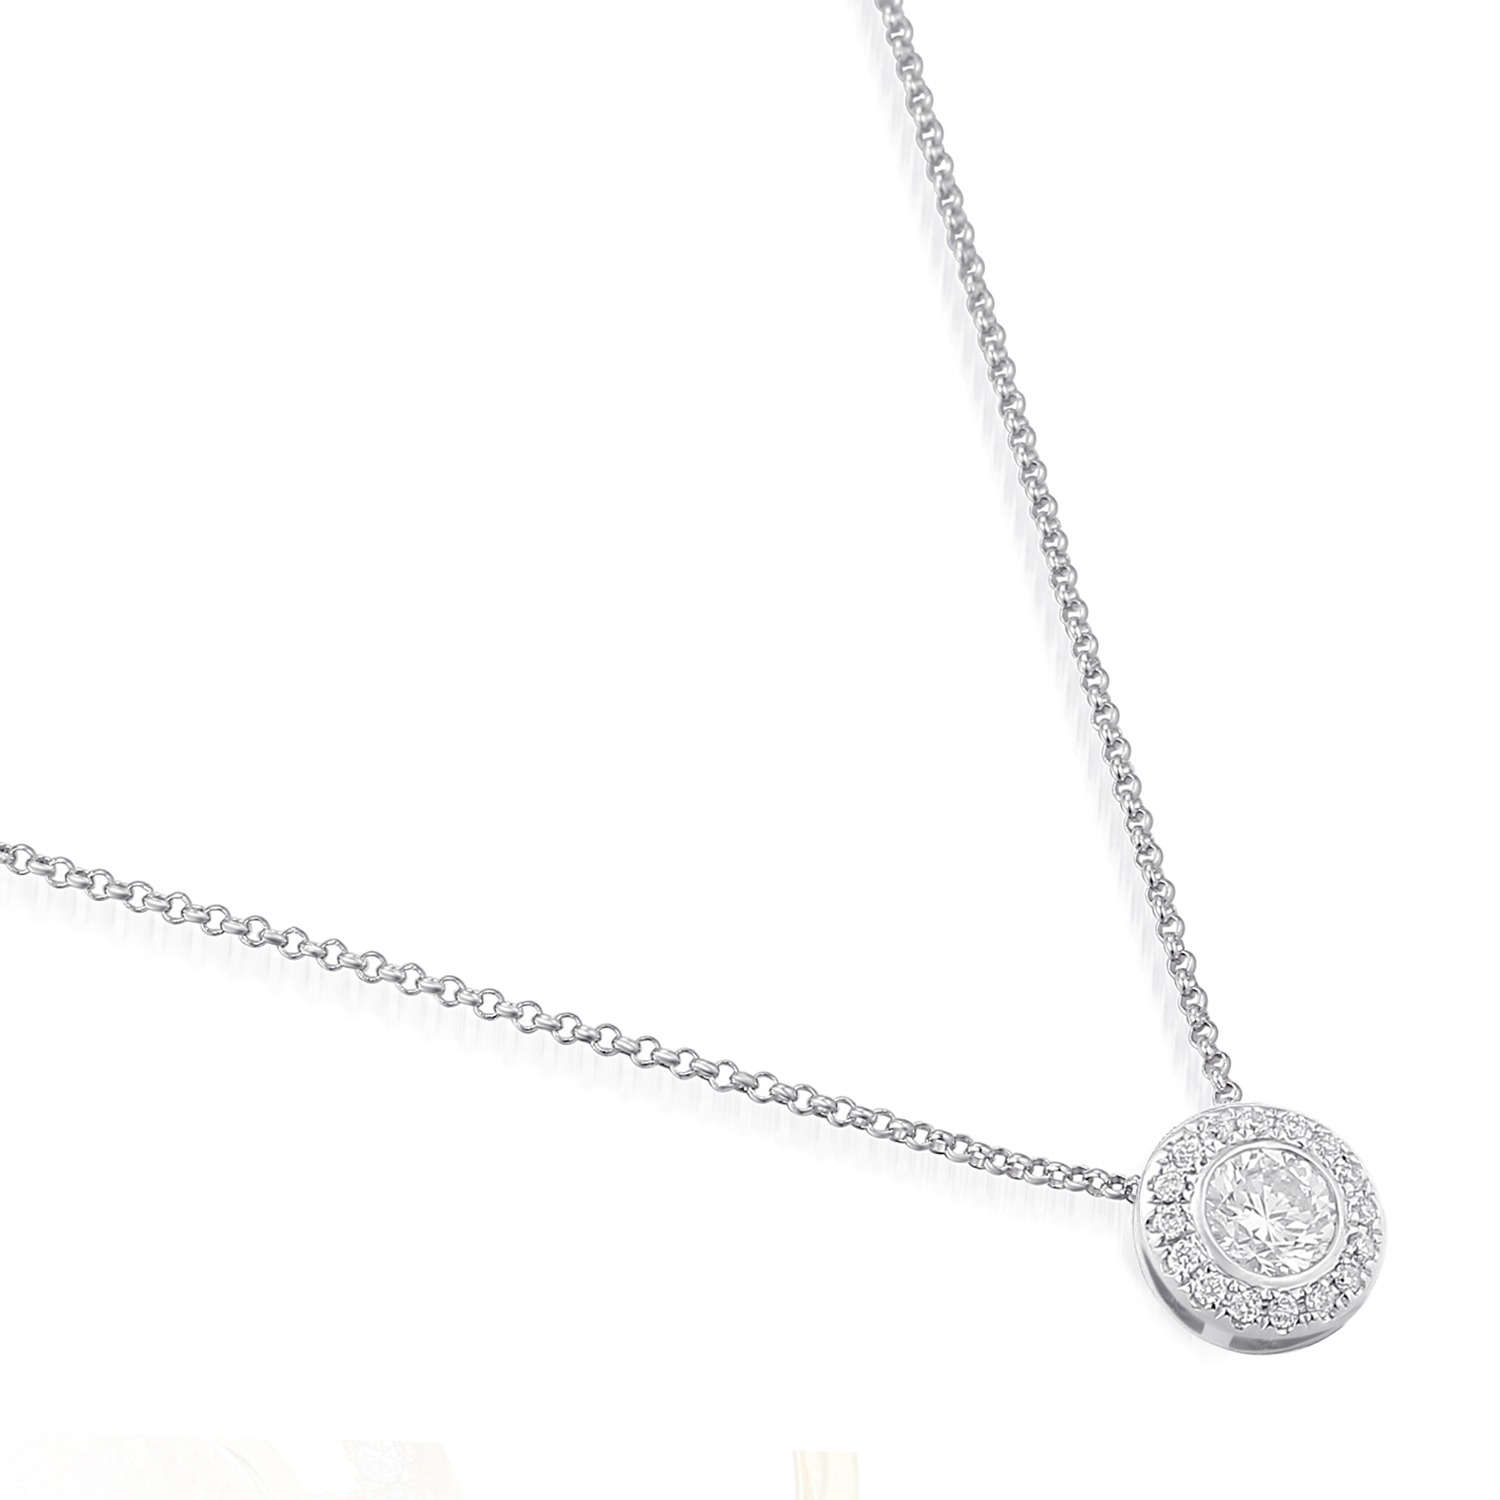 18ct white gold pendant